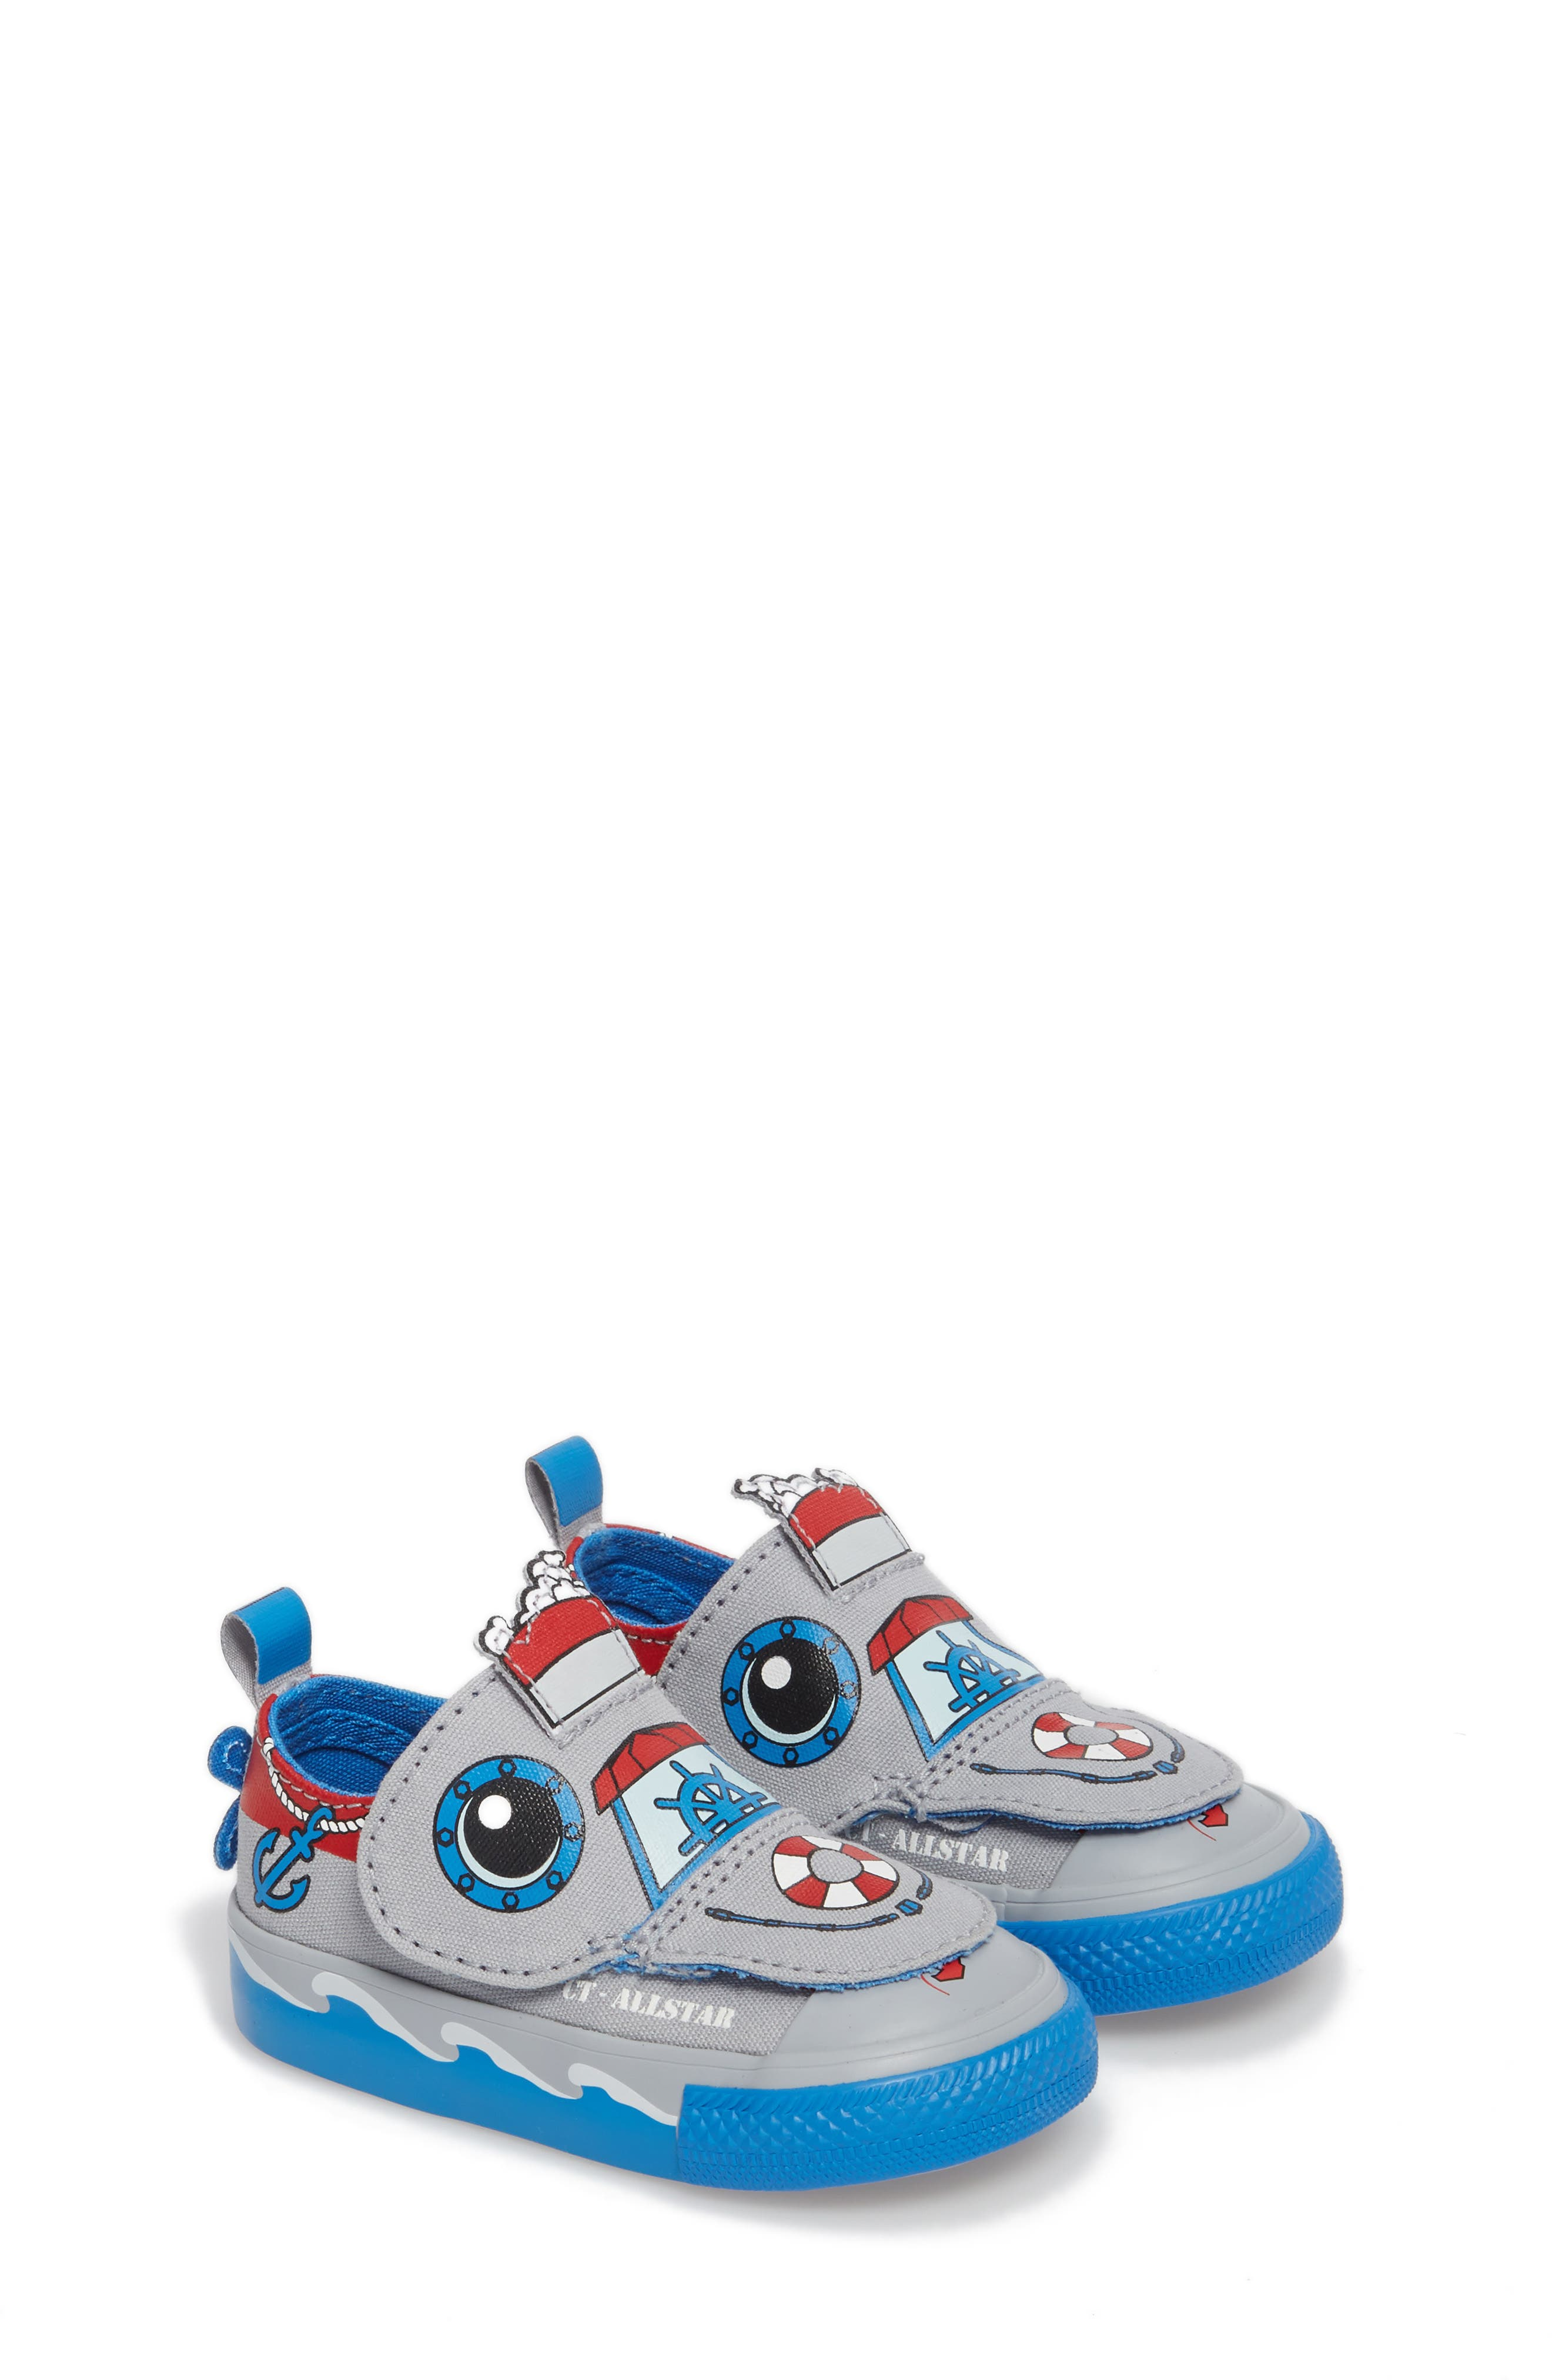 Chuck Taylor<sup>®</sup> All Star<sup>®</sup> Creatures Slip-On Sneaker,                             Main thumbnail 1, color,